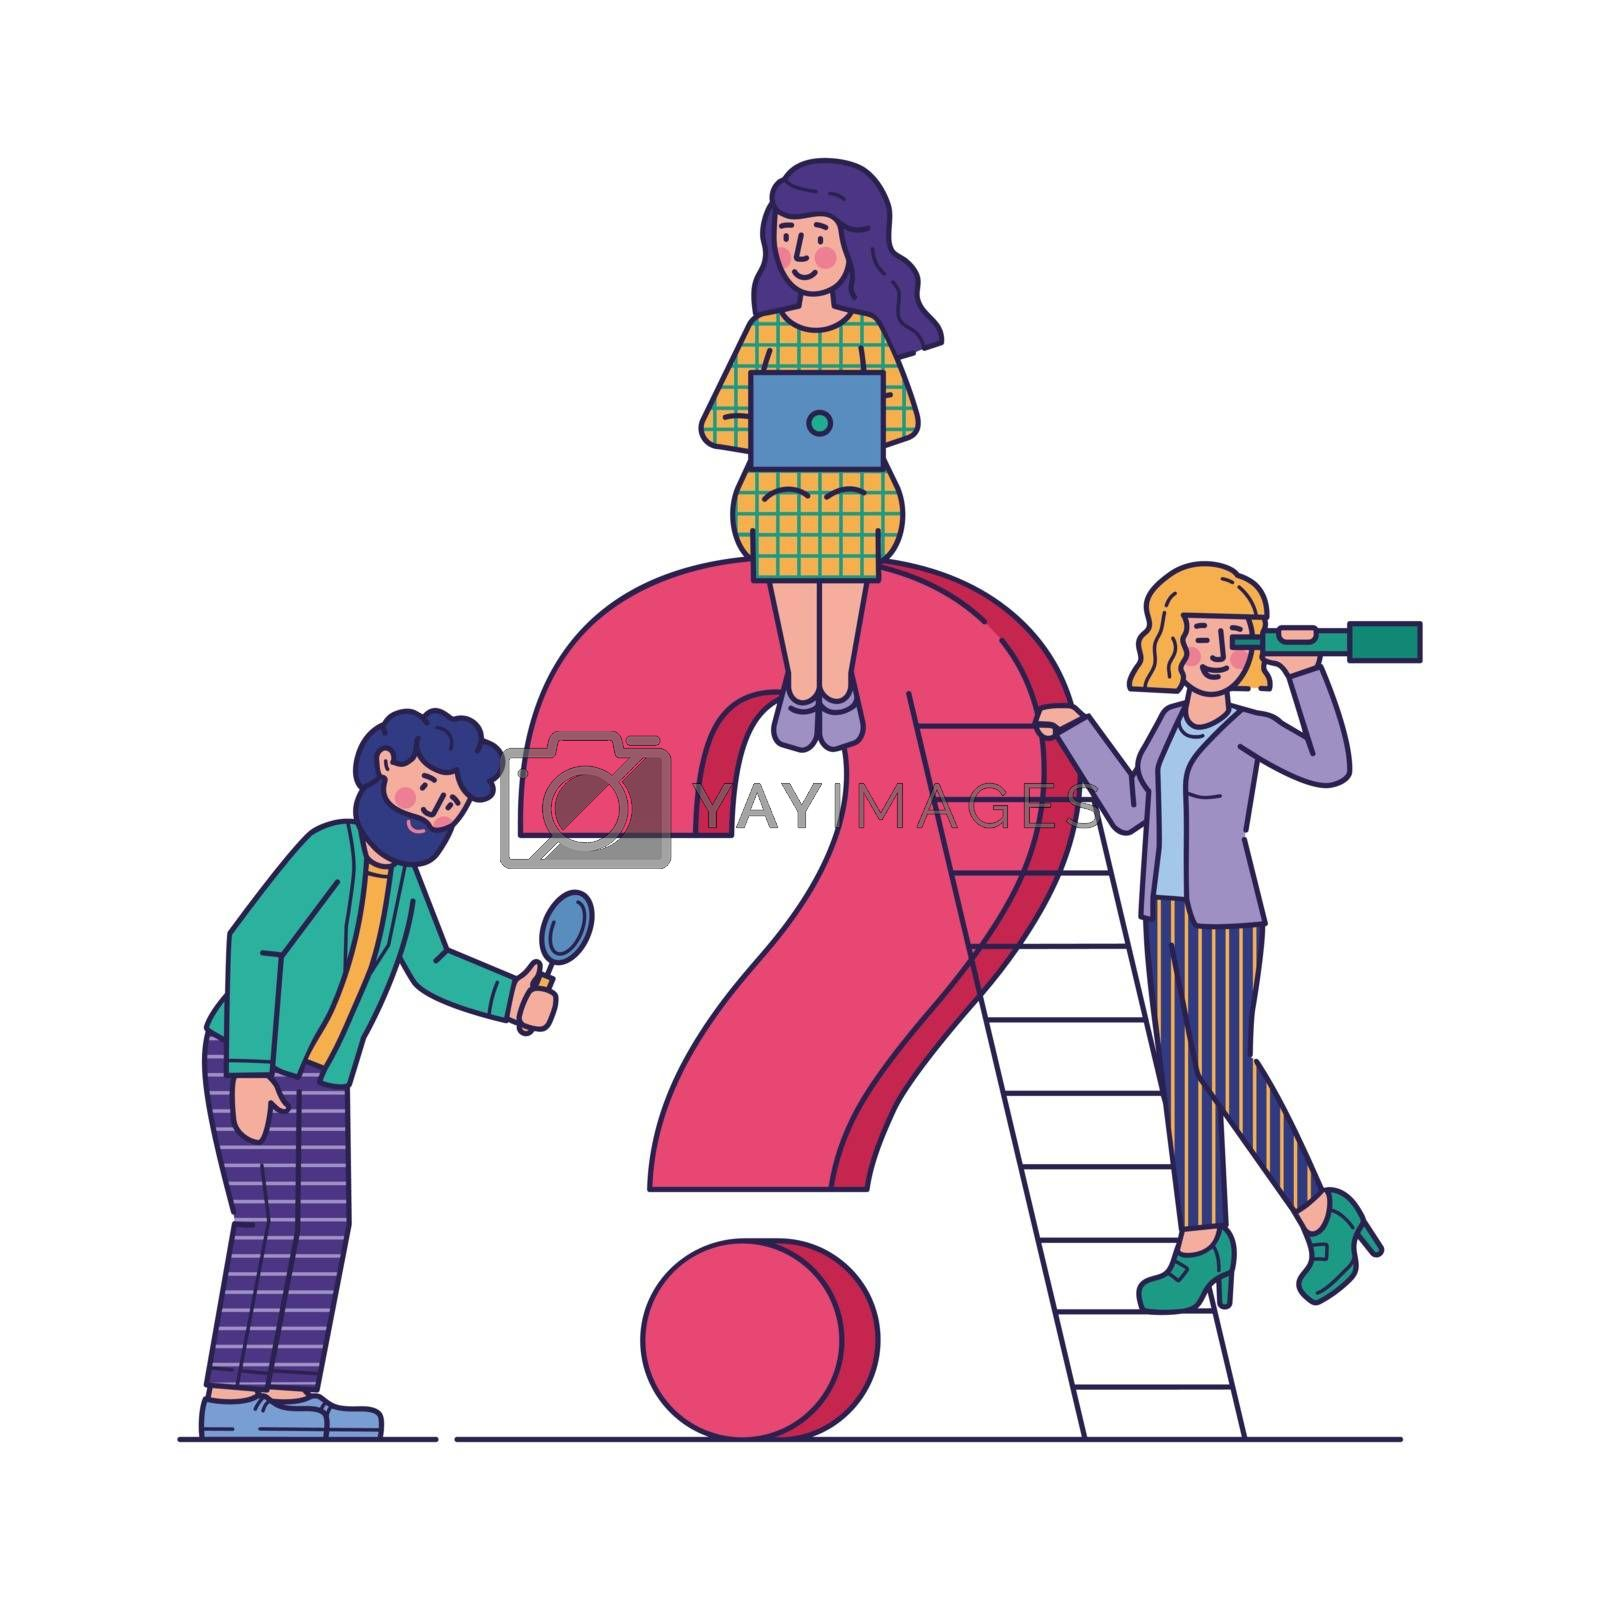 Business people asking questions flat vector illustration. Team assisting and looking for solution and answer together. Giant question mark. Communication and help concept.